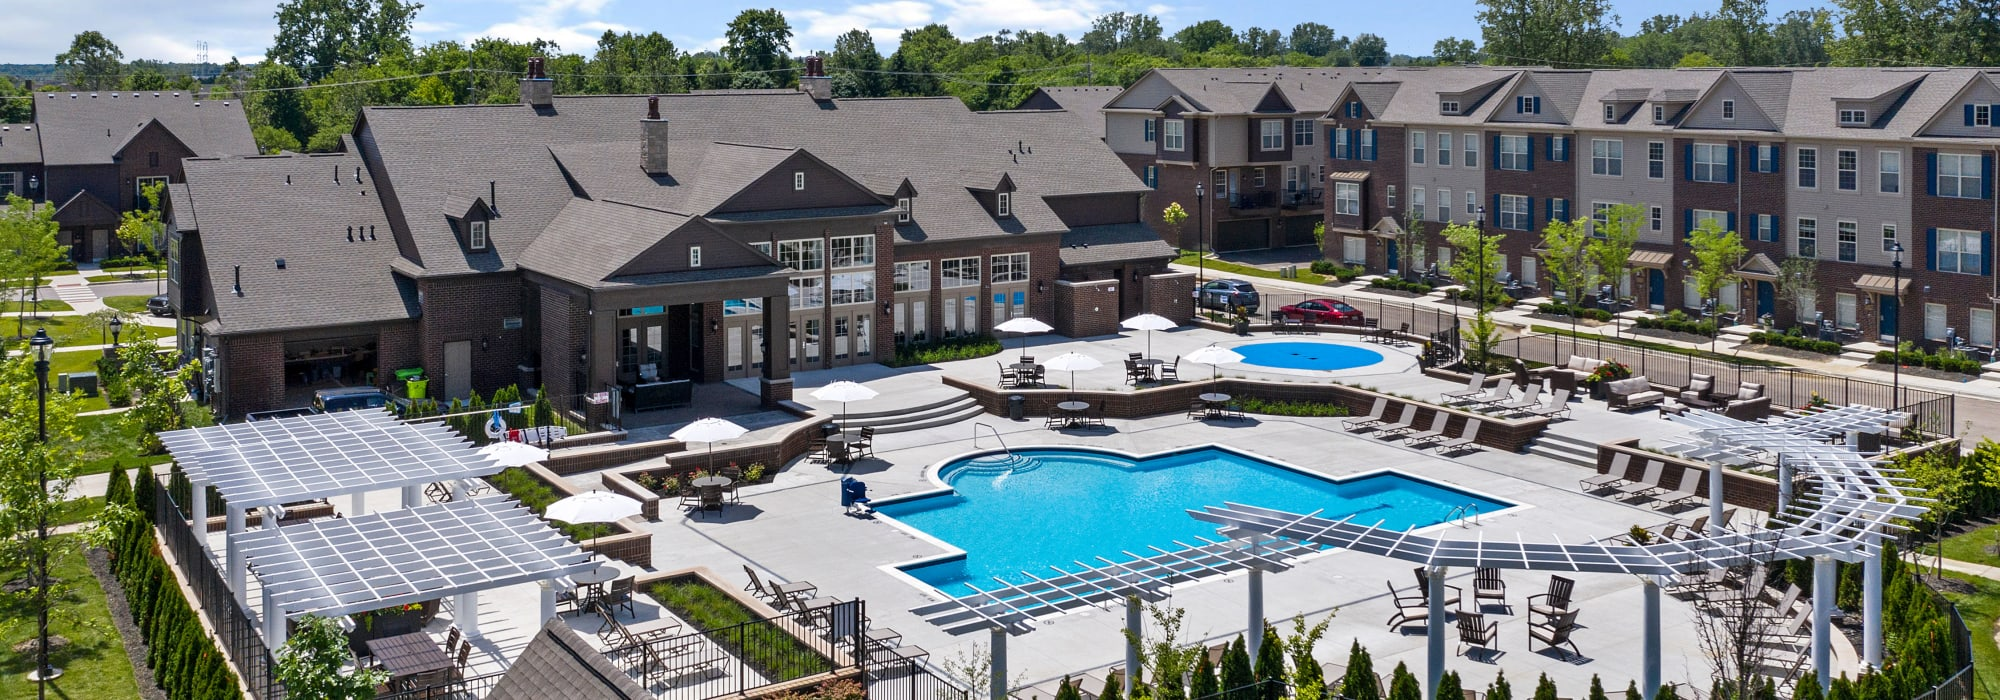 Apartments at Park West in Canton, Michigan